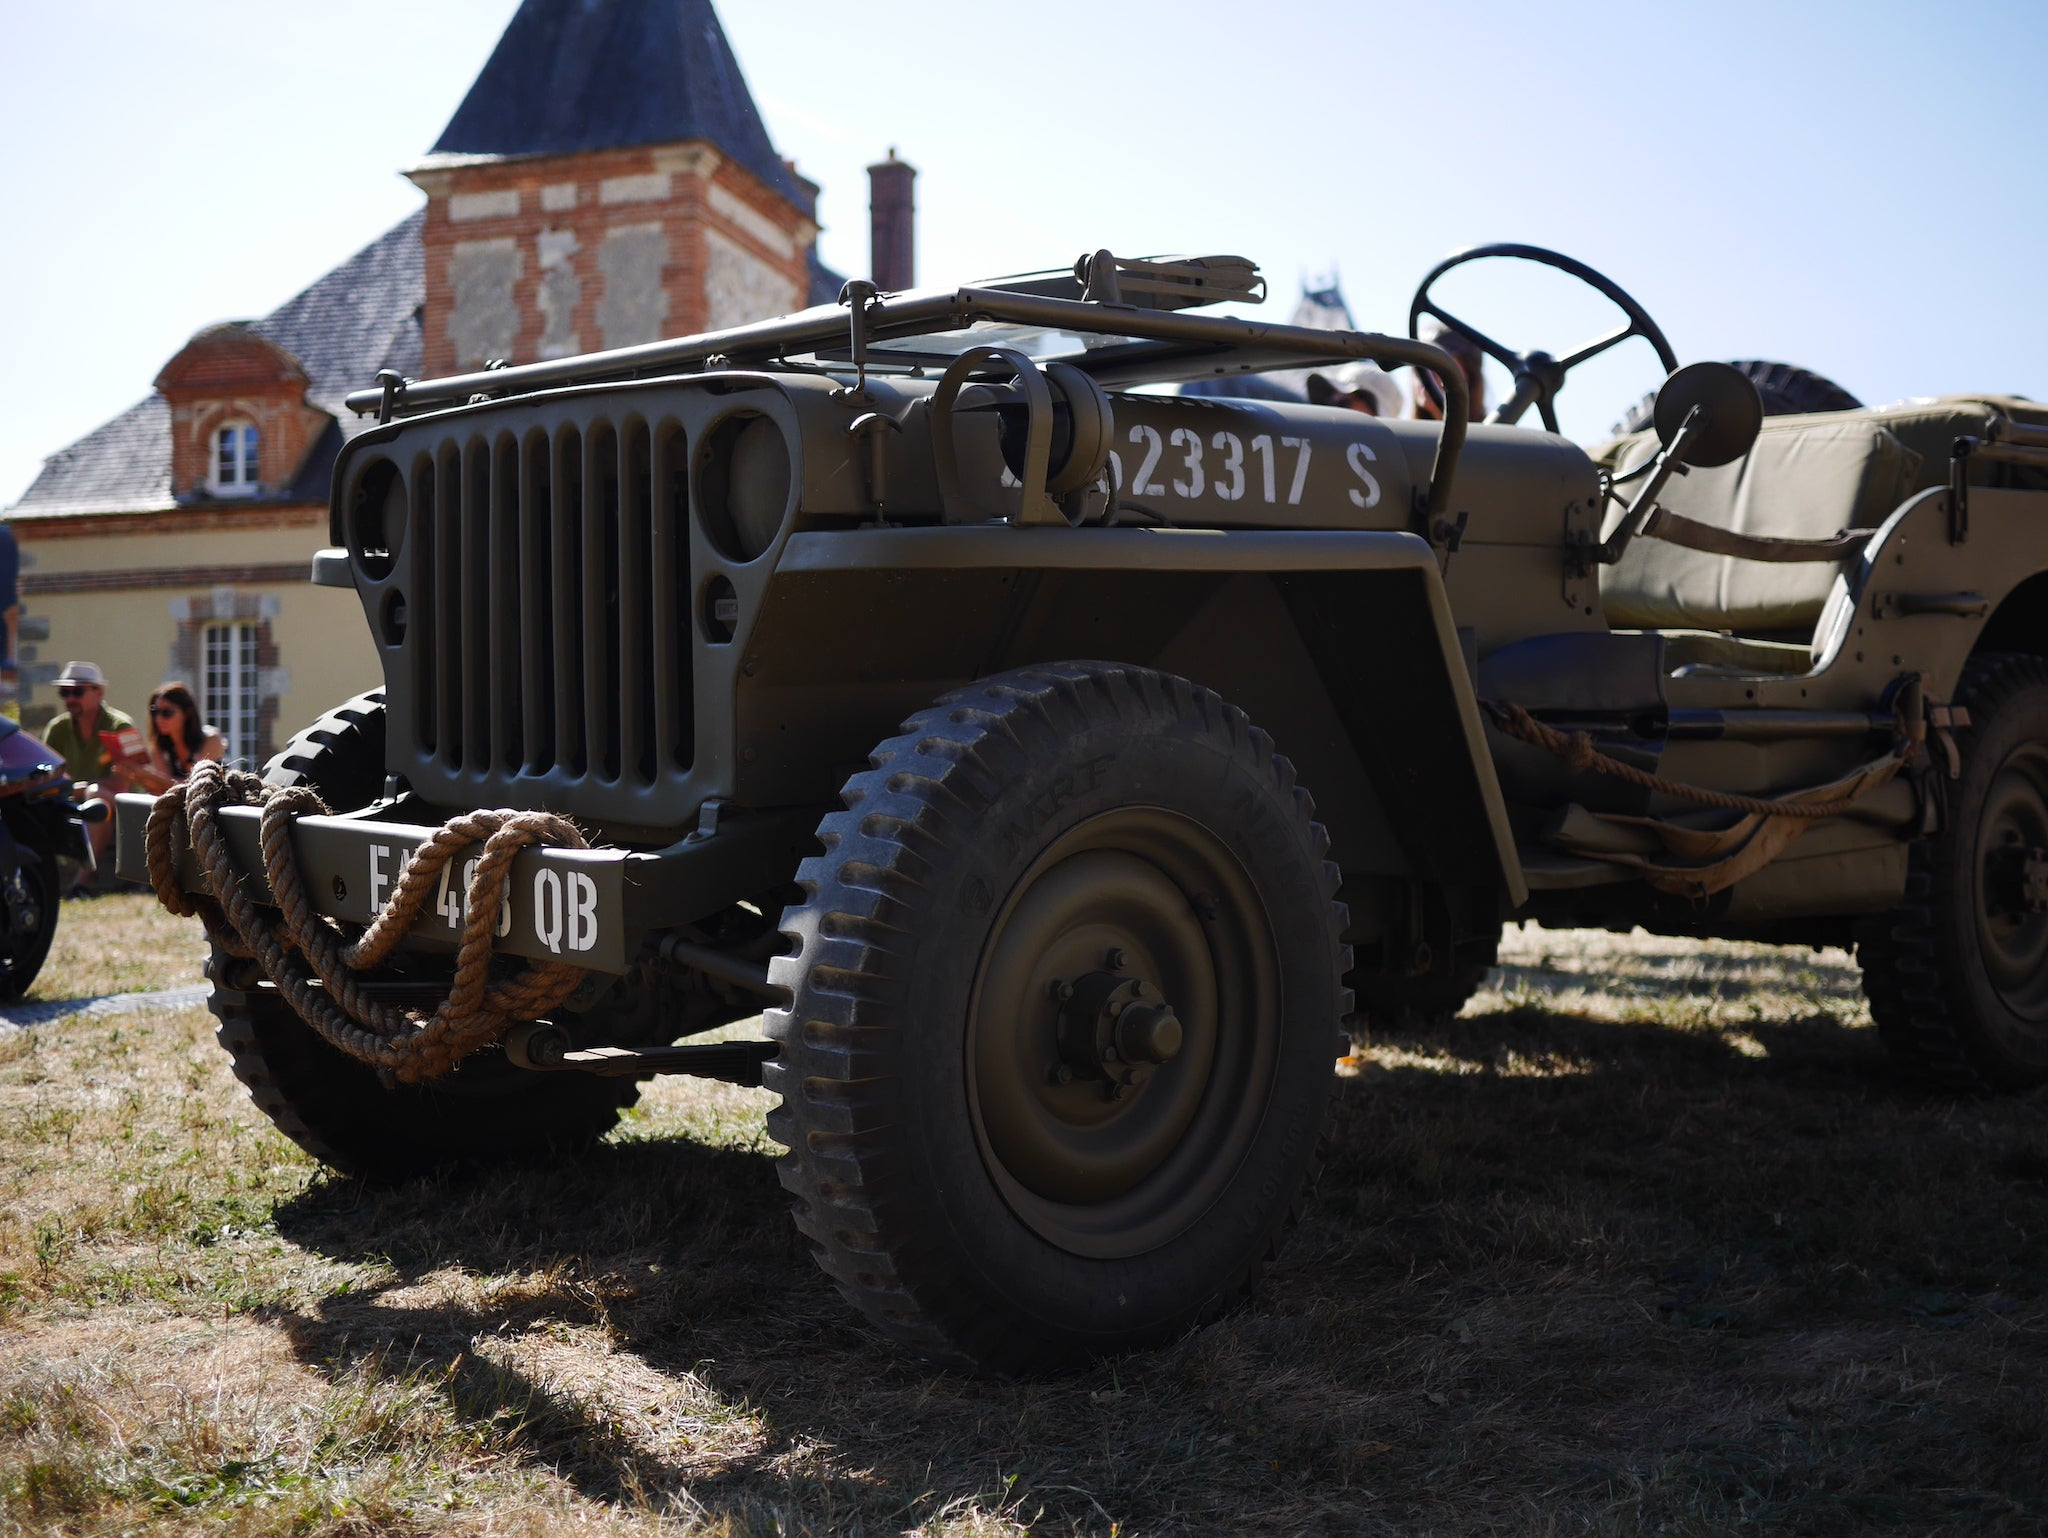 Oil Can Grooming Motors and Soul Festival Military Jeep France